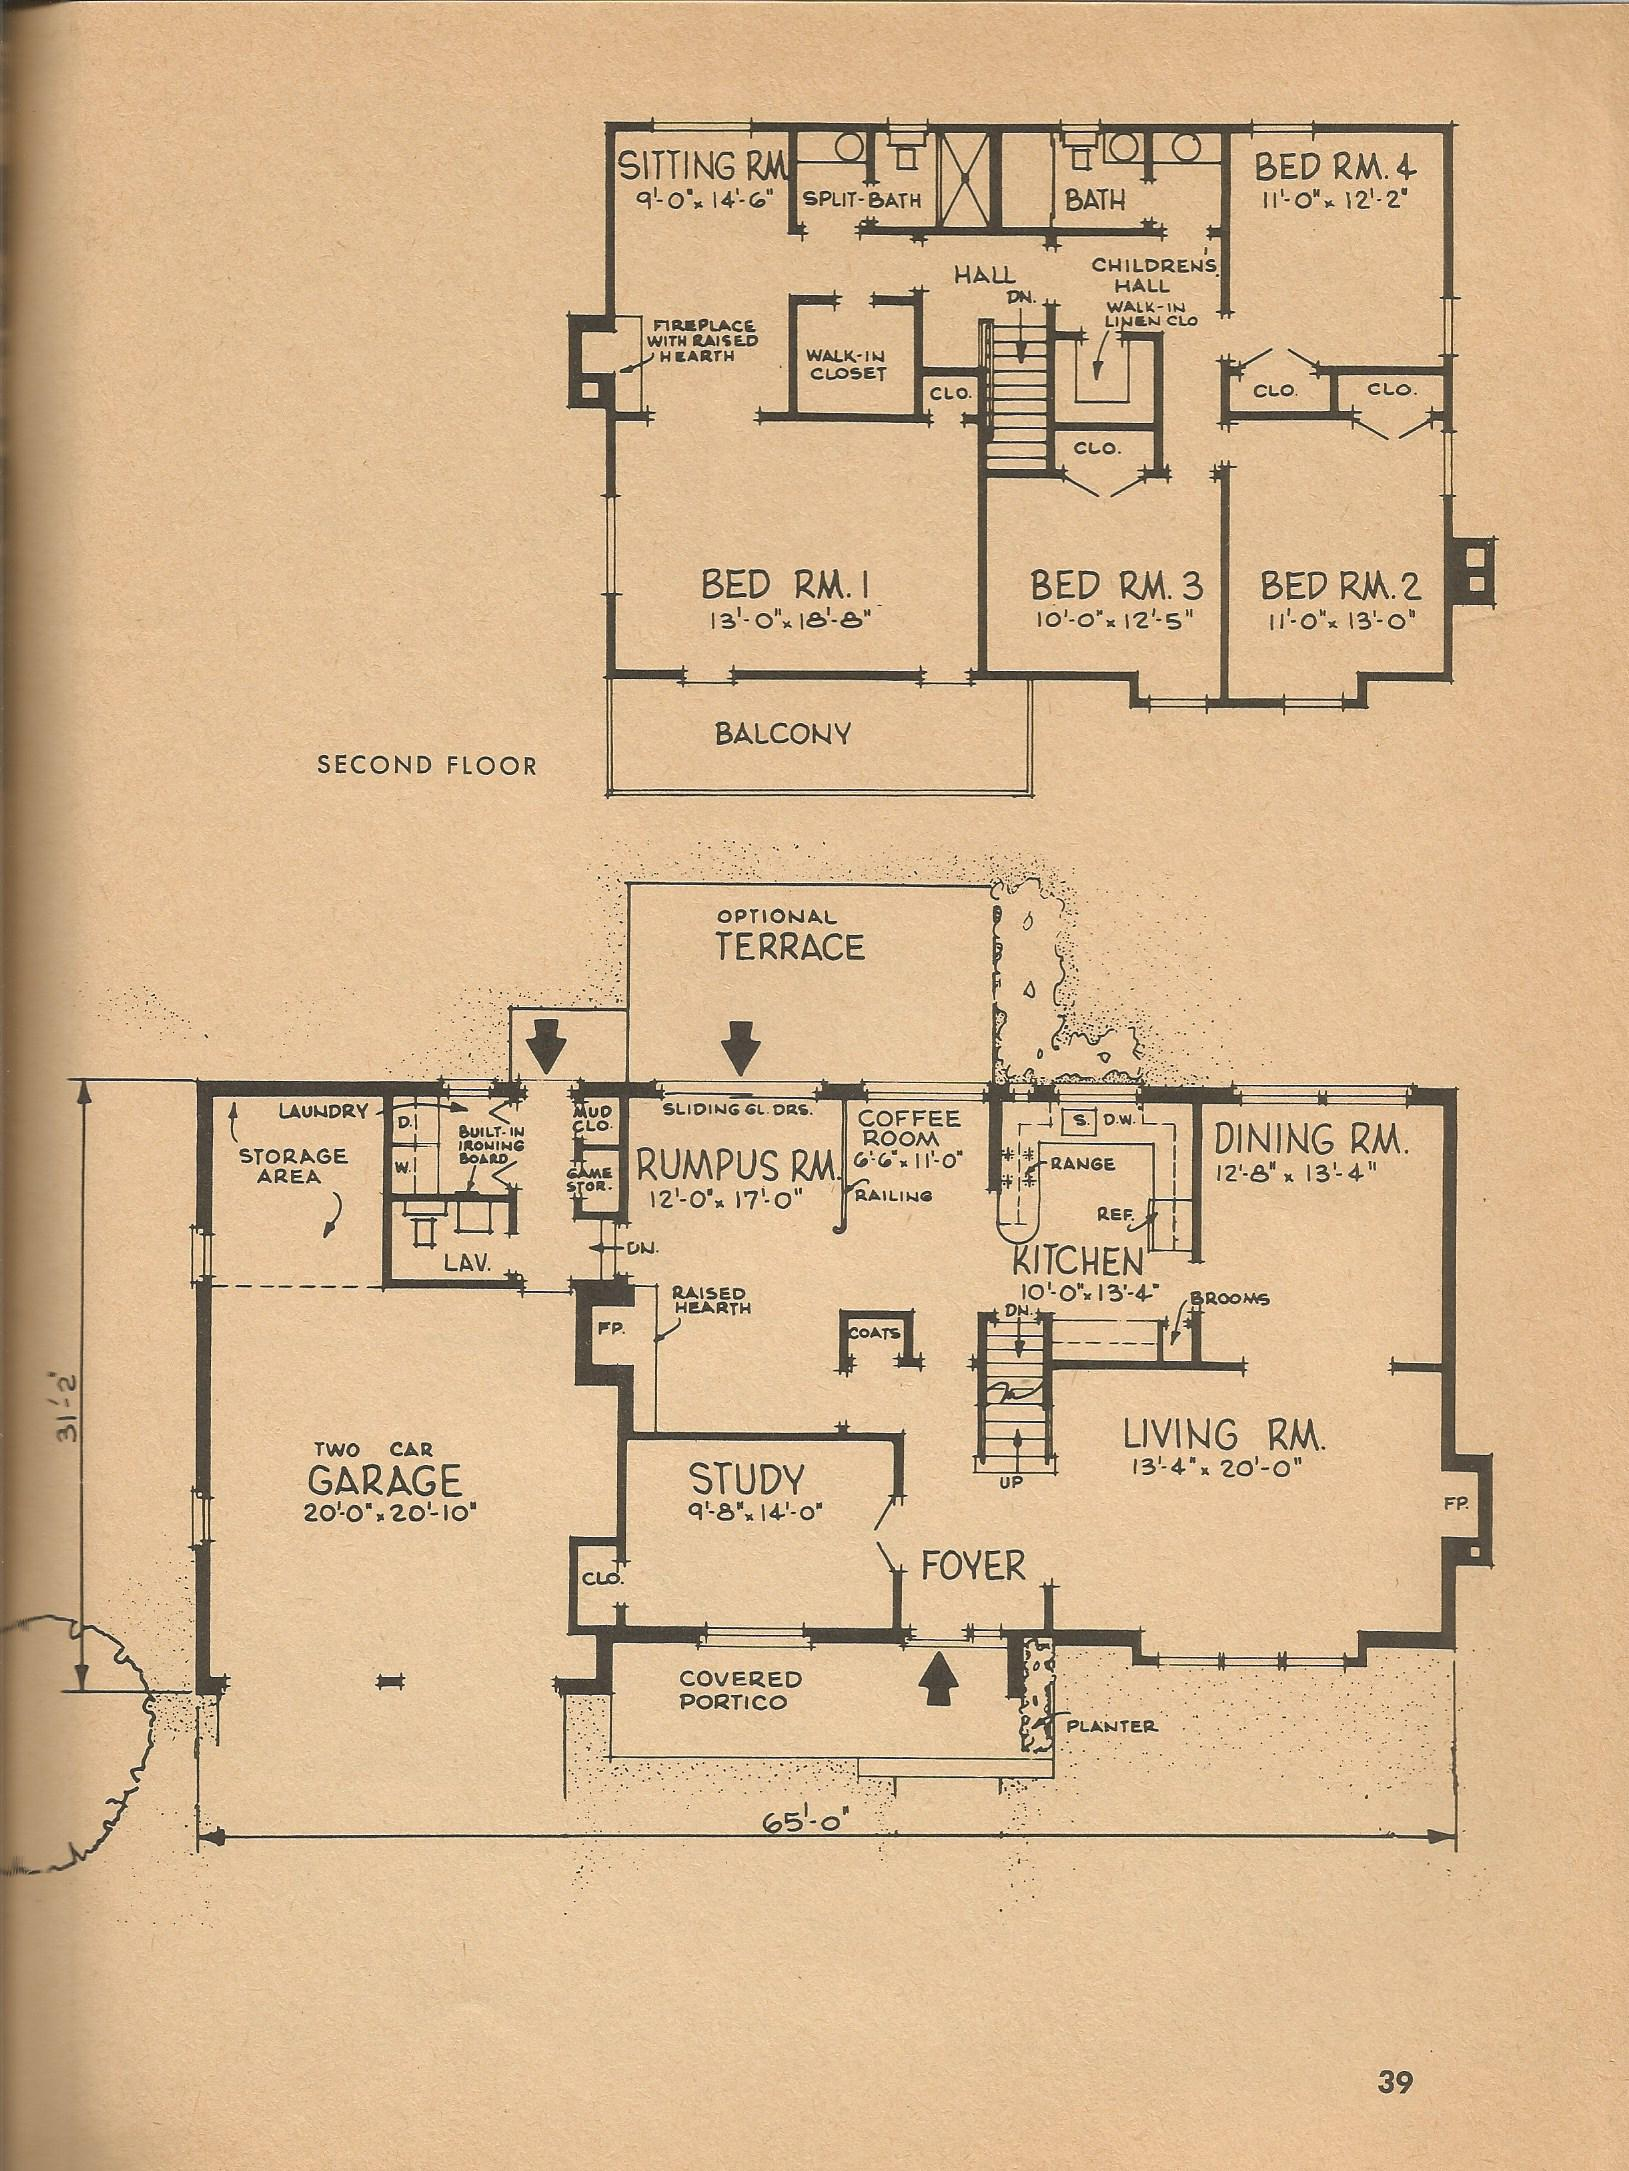 Vintage house plans 8606a antique alter ego for Vintage floor plans